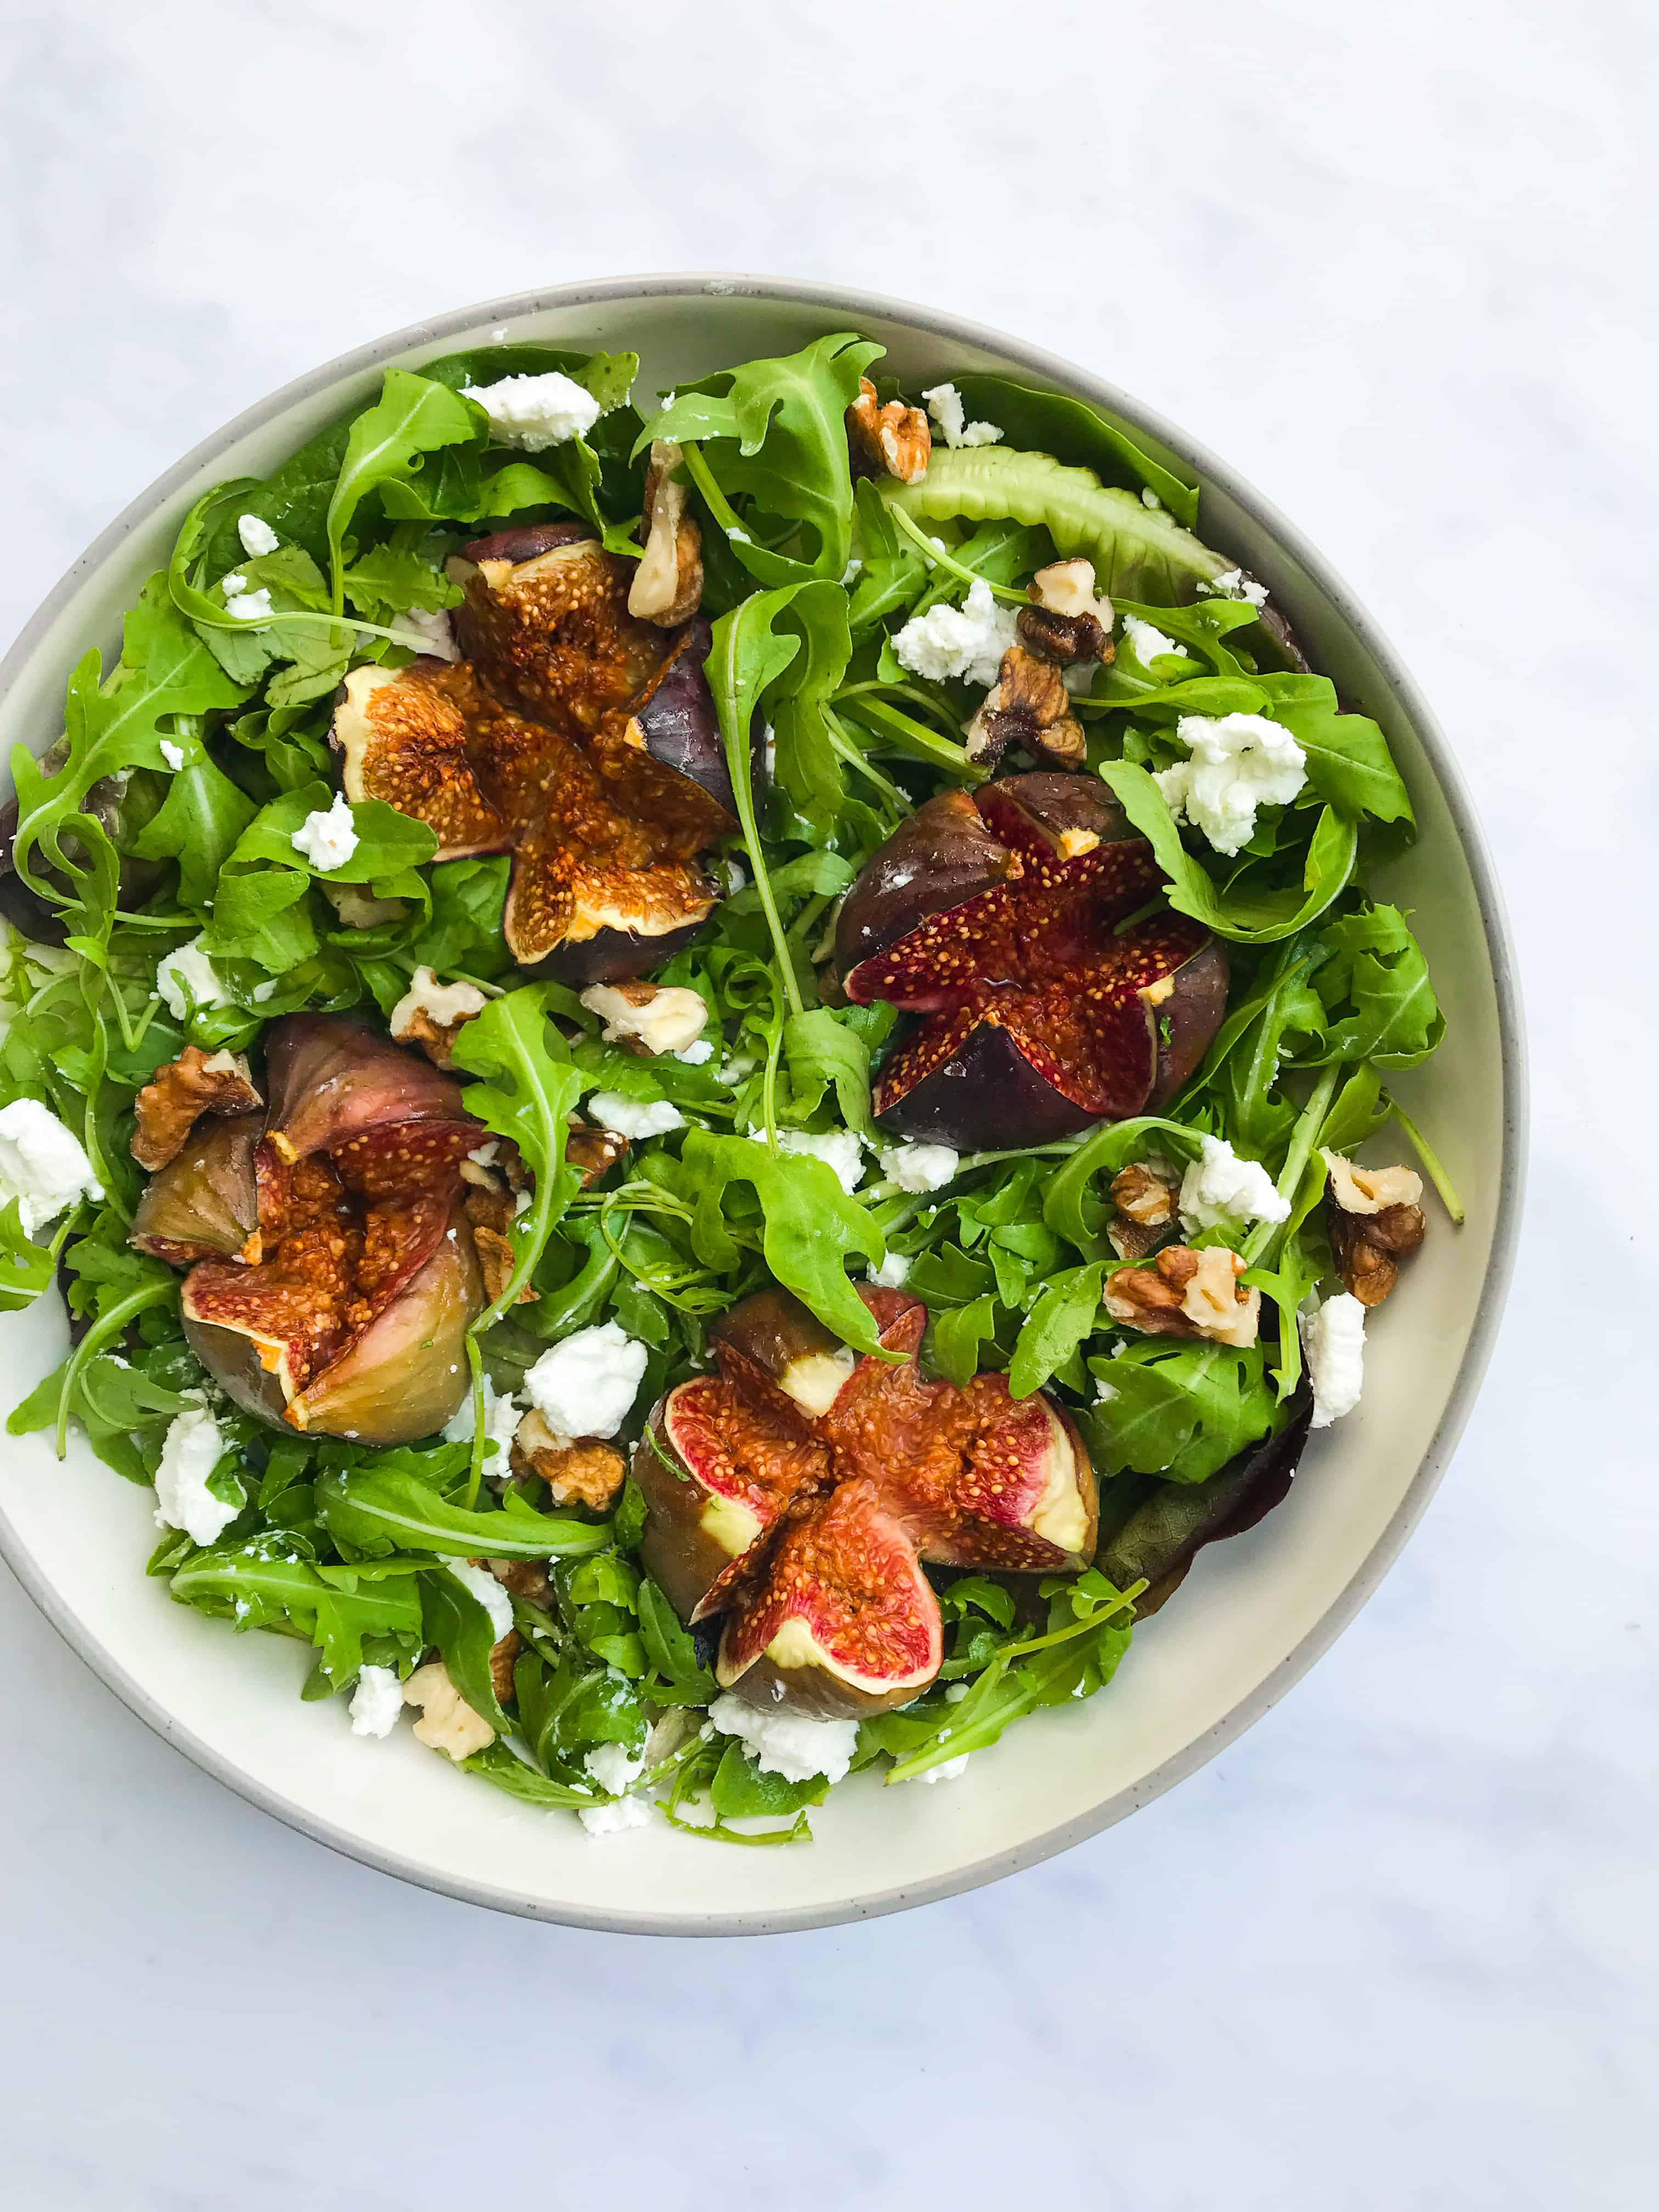 Honey Roasted Fig, Goats Cheese, Wild Rocket & Walnut Salad with a Balsamic Reduction. Healthy, GF & Vegan Option - Georgie Eats.